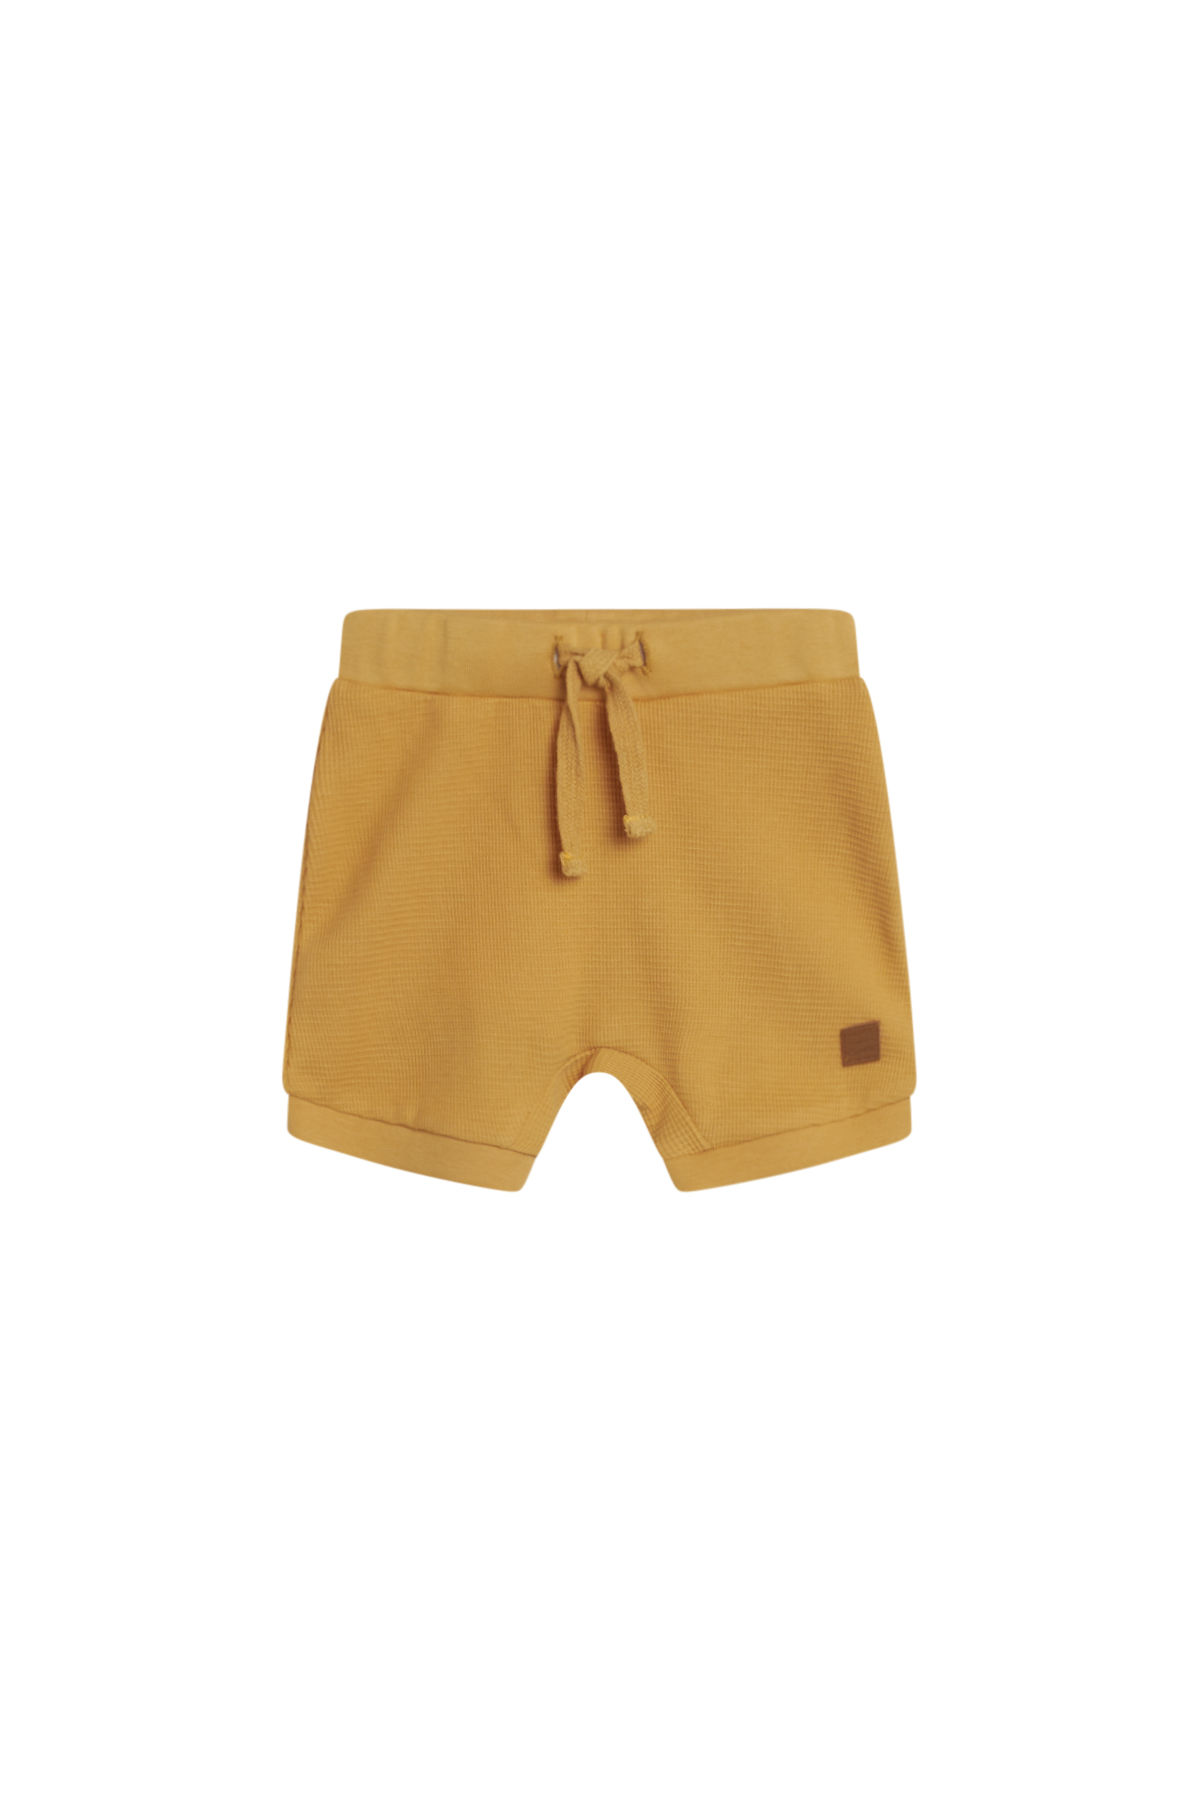 Hust and Claire Hubert shorts